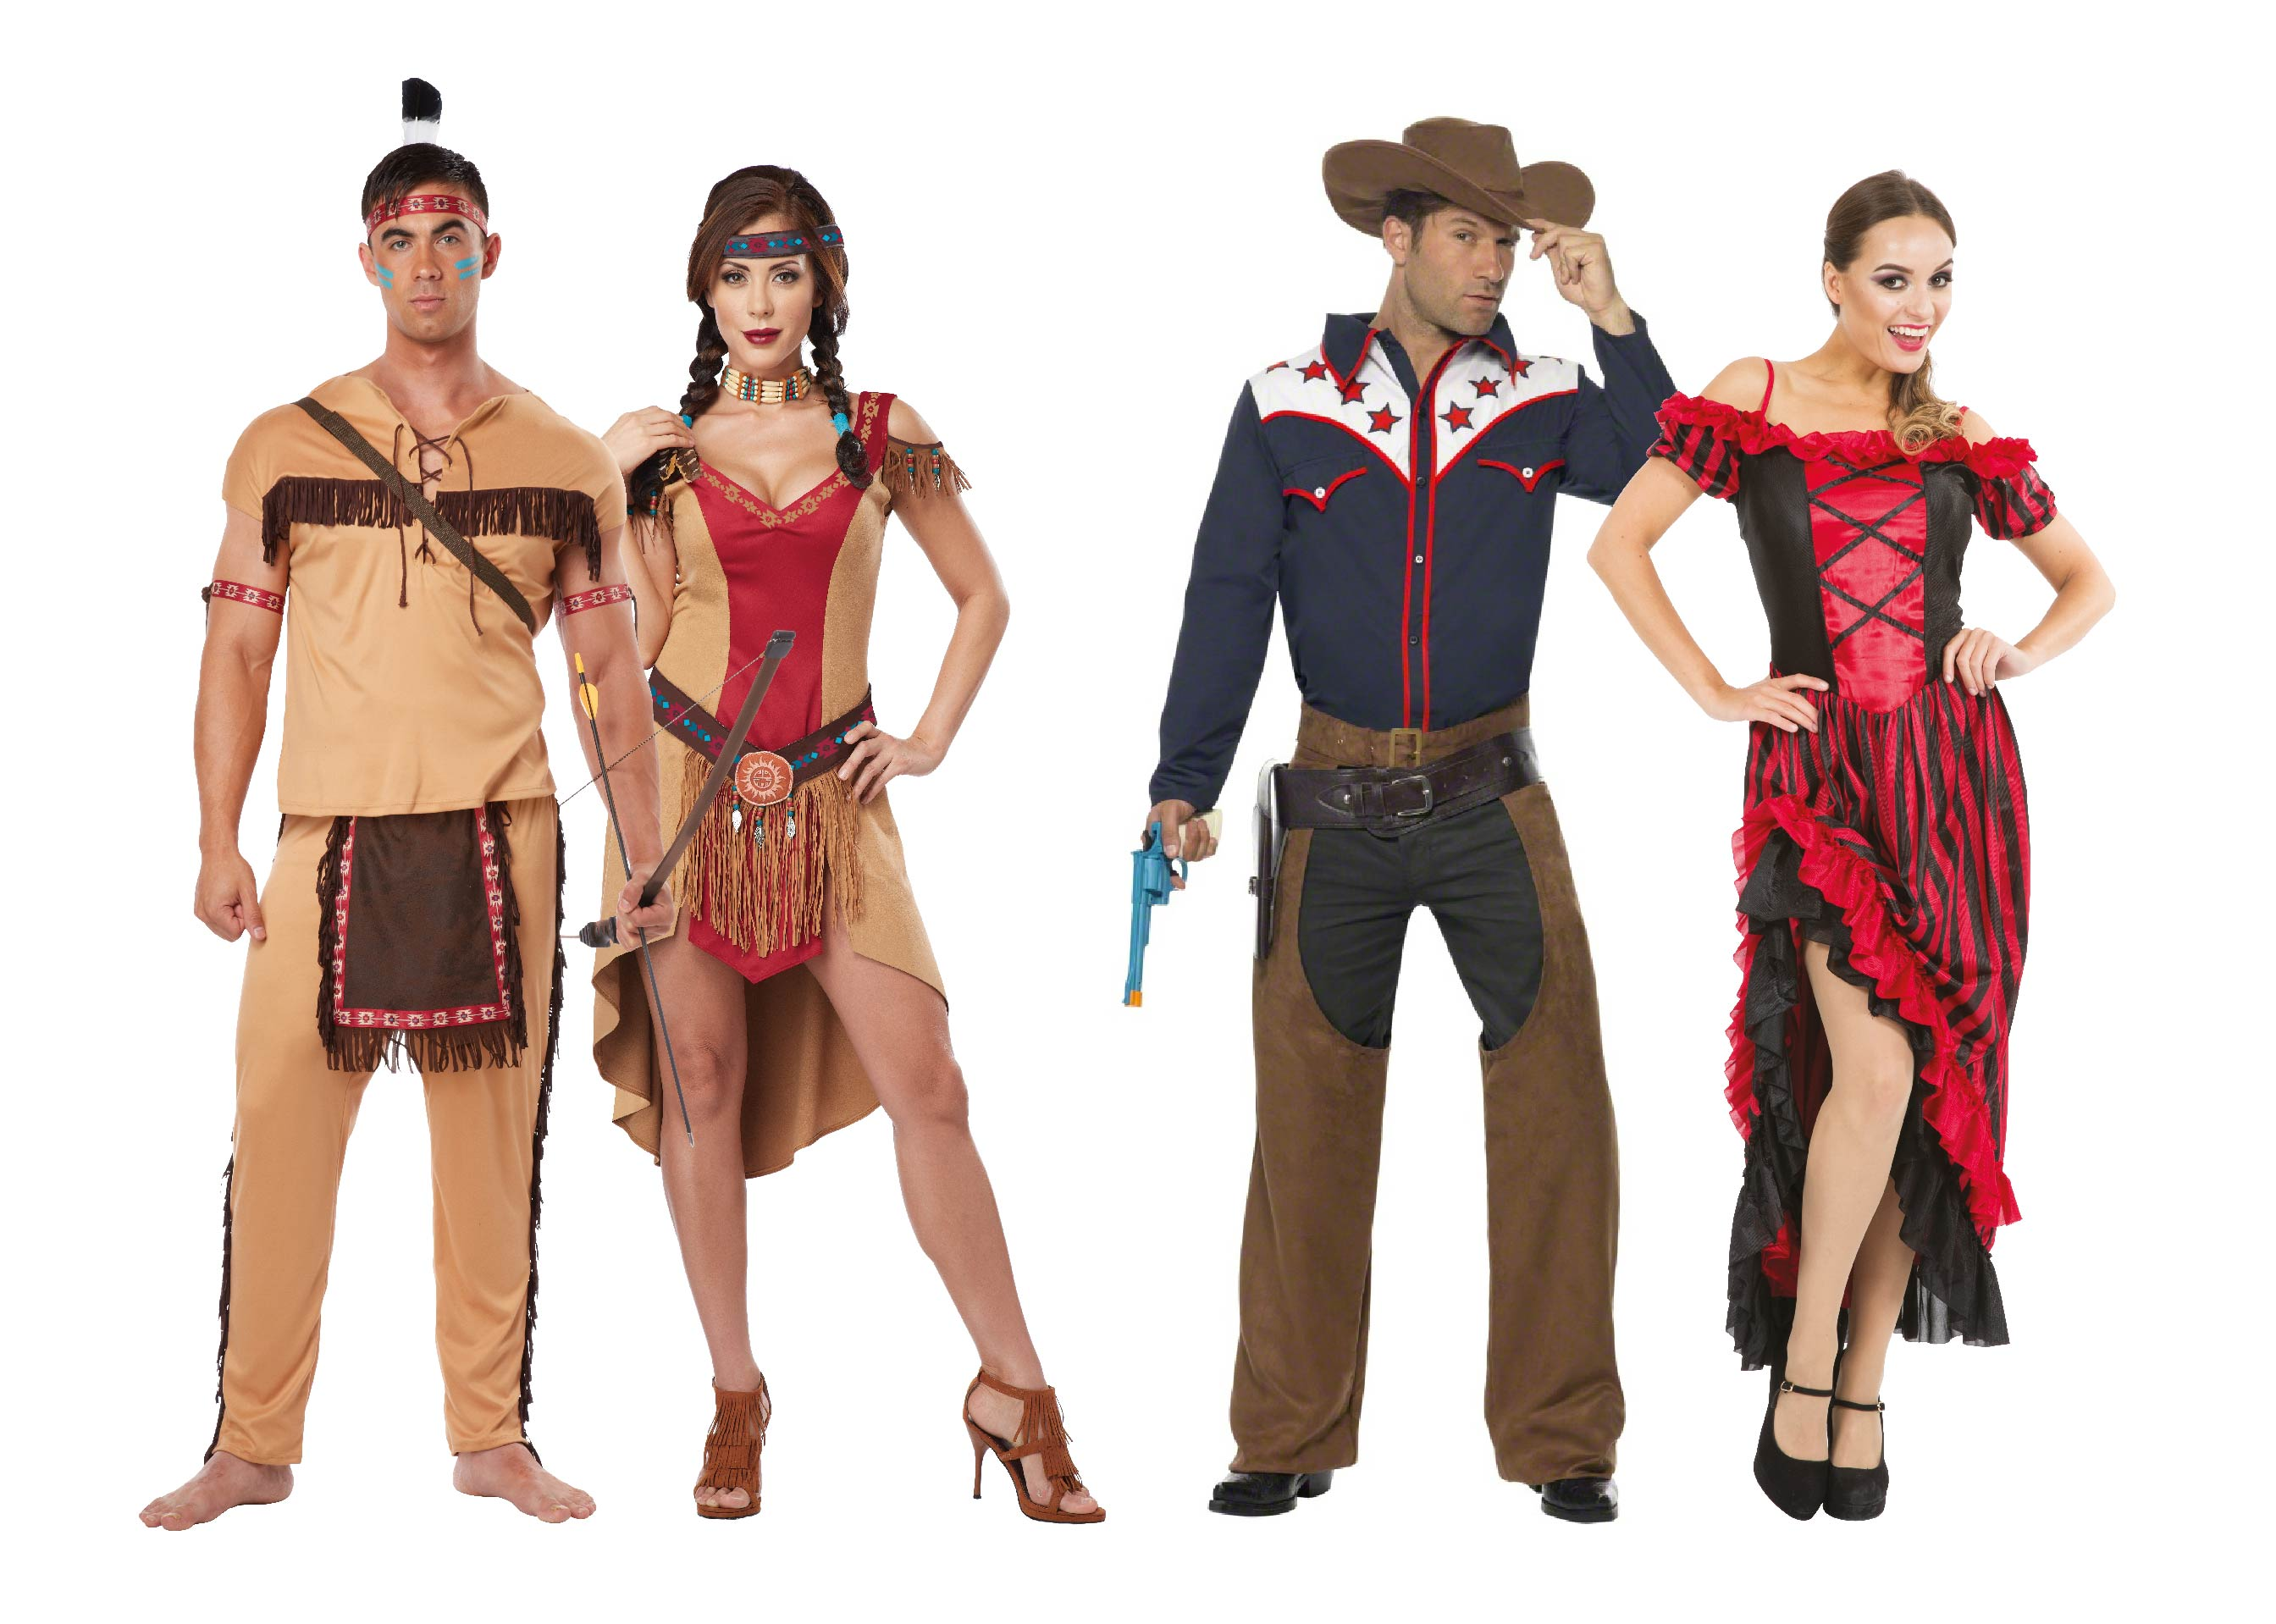 Adults wearing Cowboys and Indians group costumes.